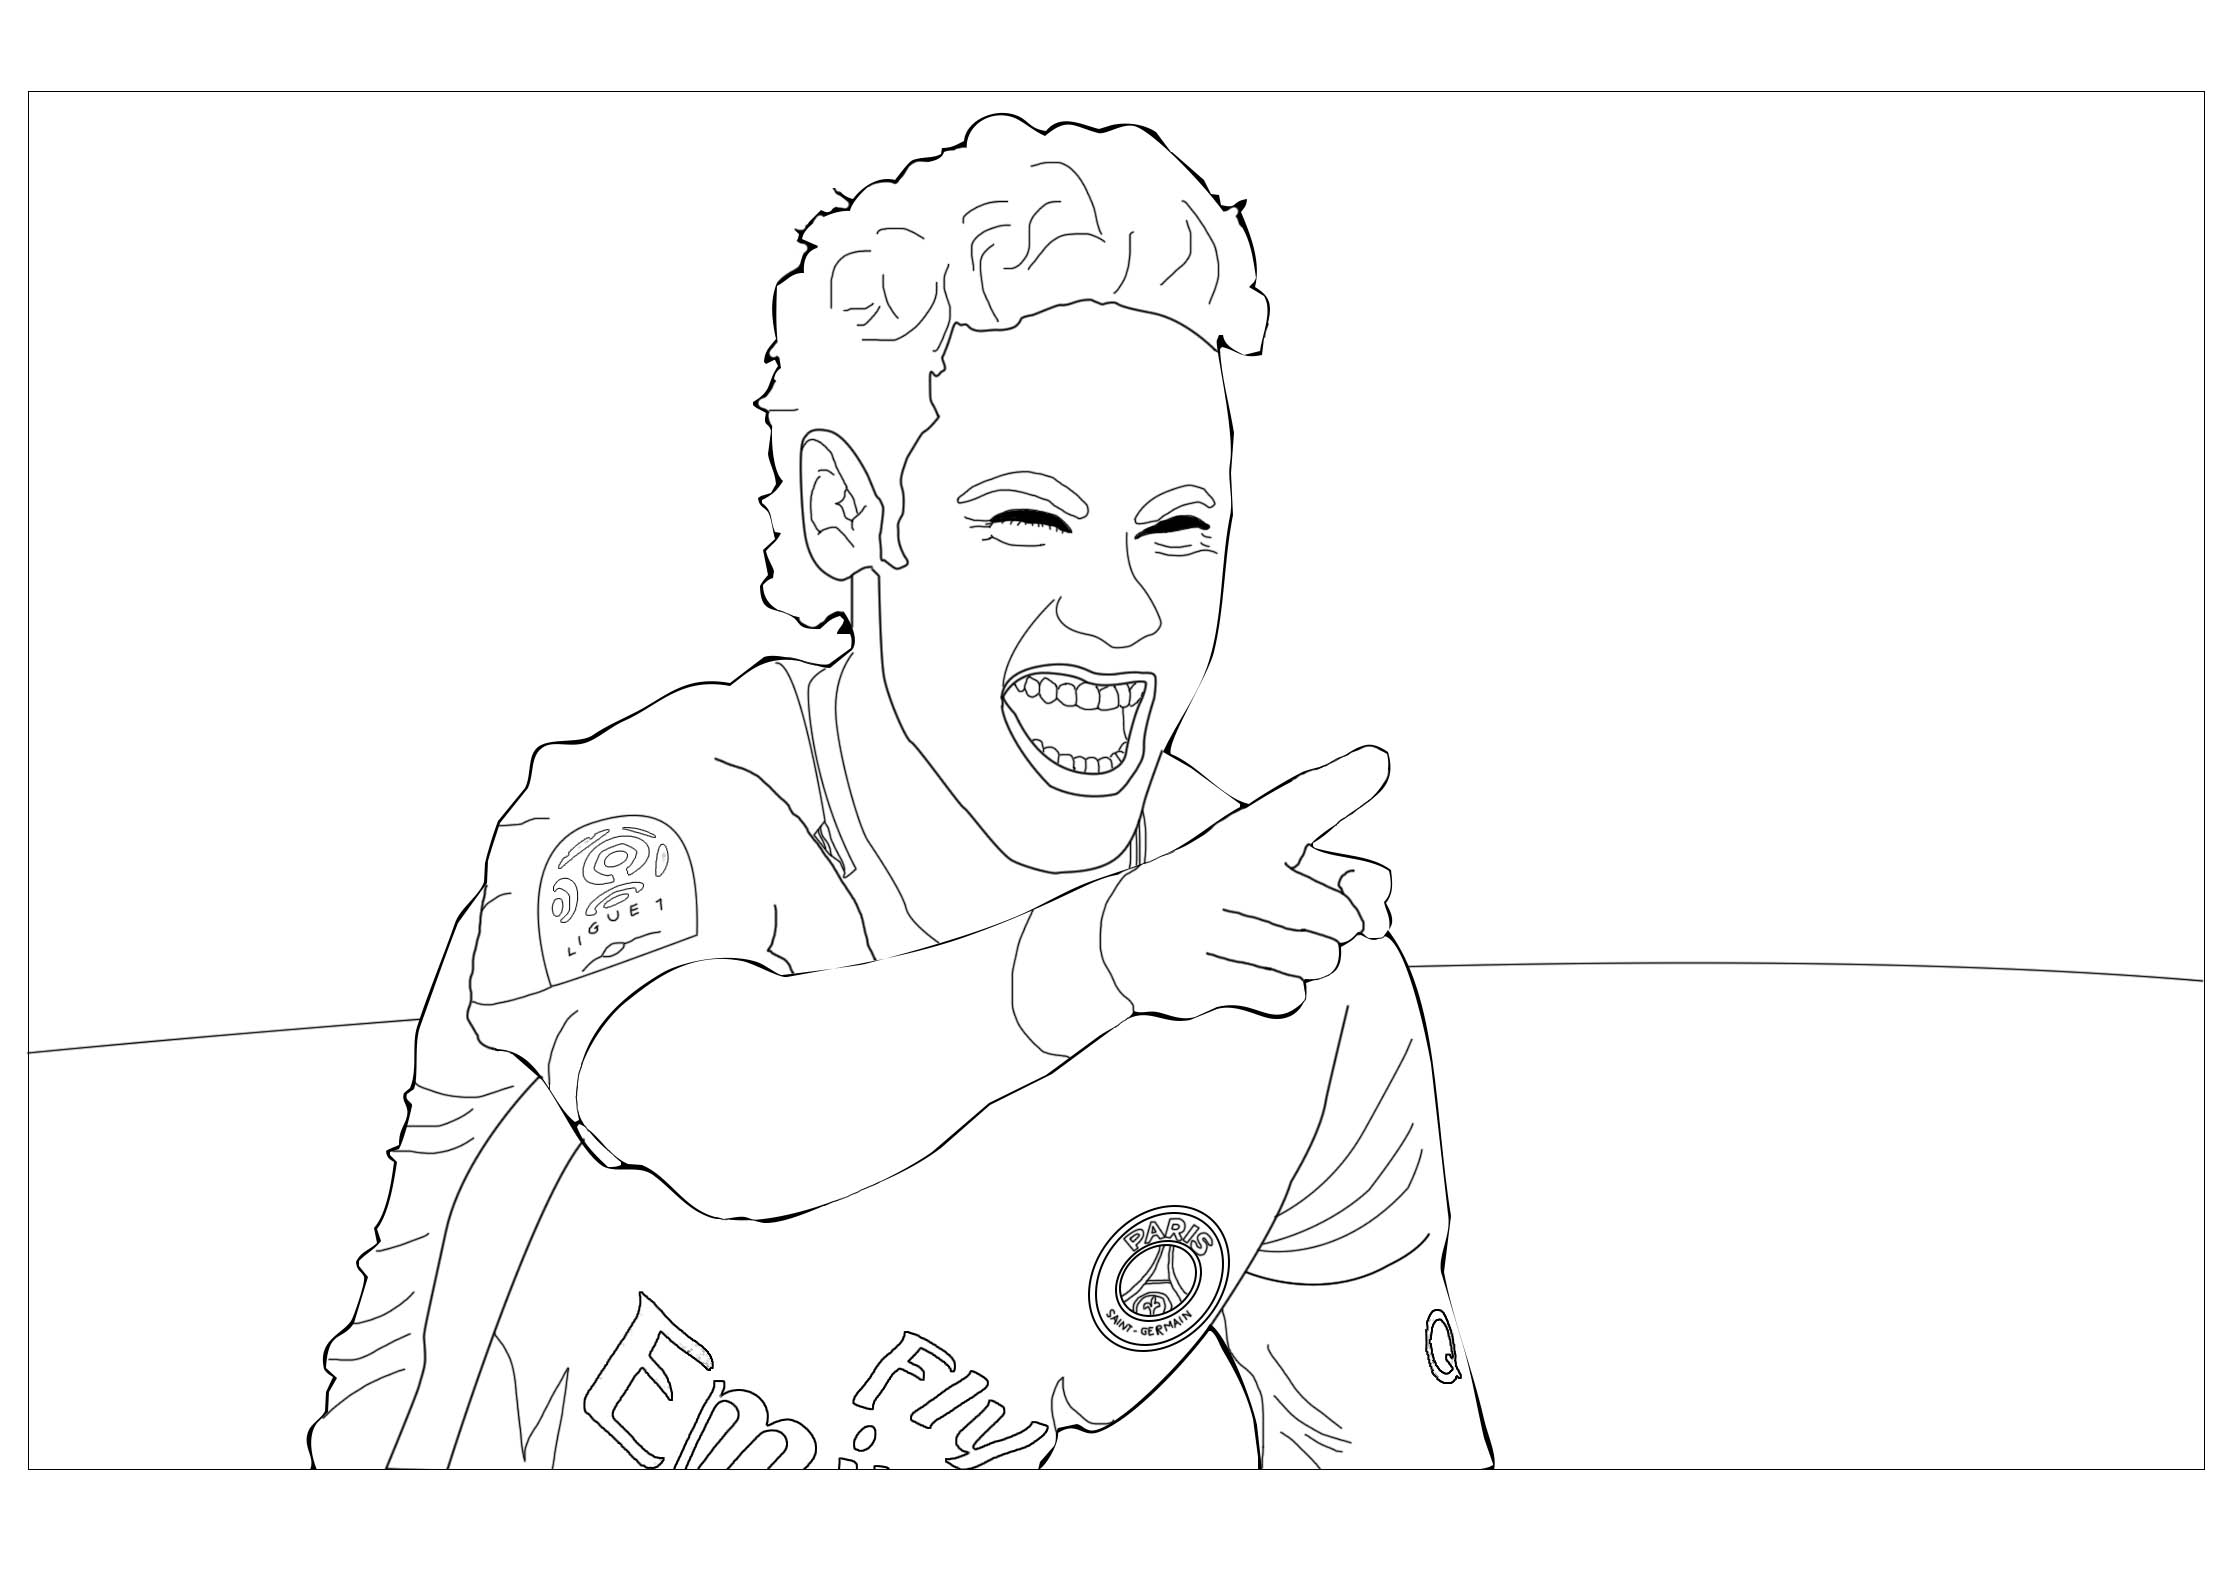 football colouring pages, coloring pages soccer, coloring pages psg